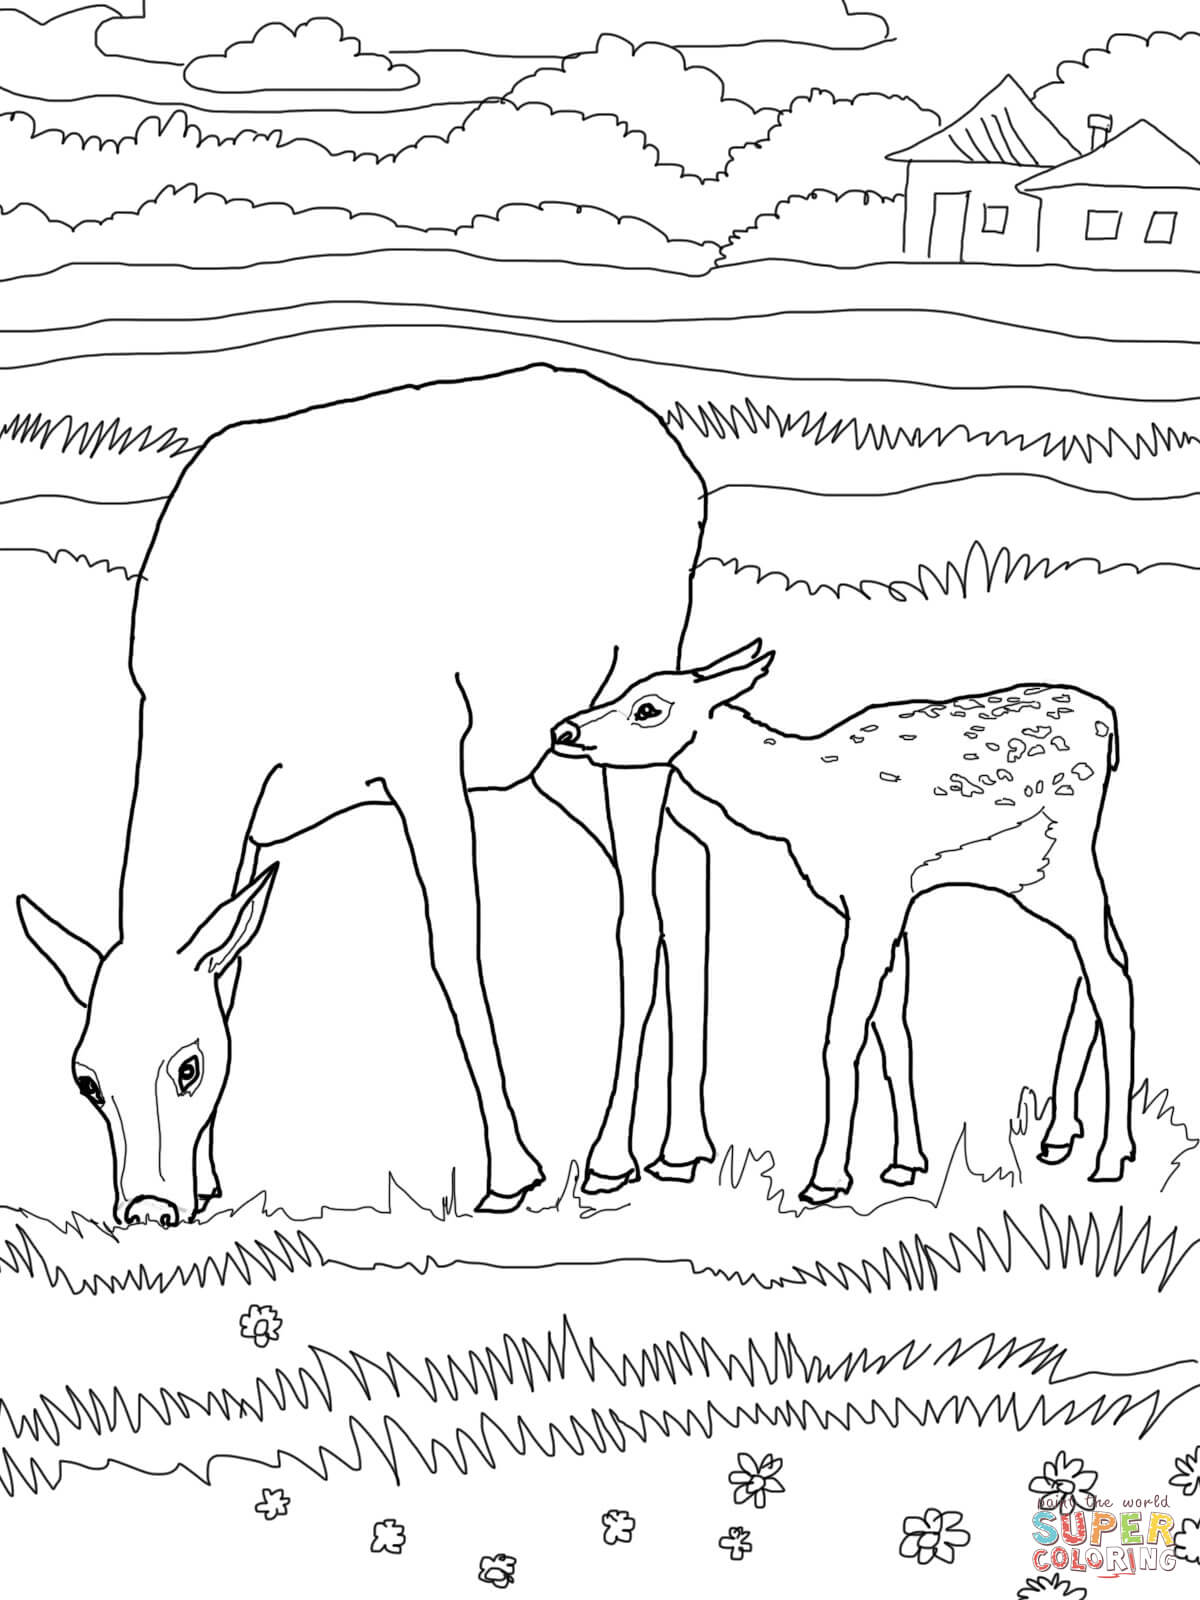 Bull elk coloring pages download